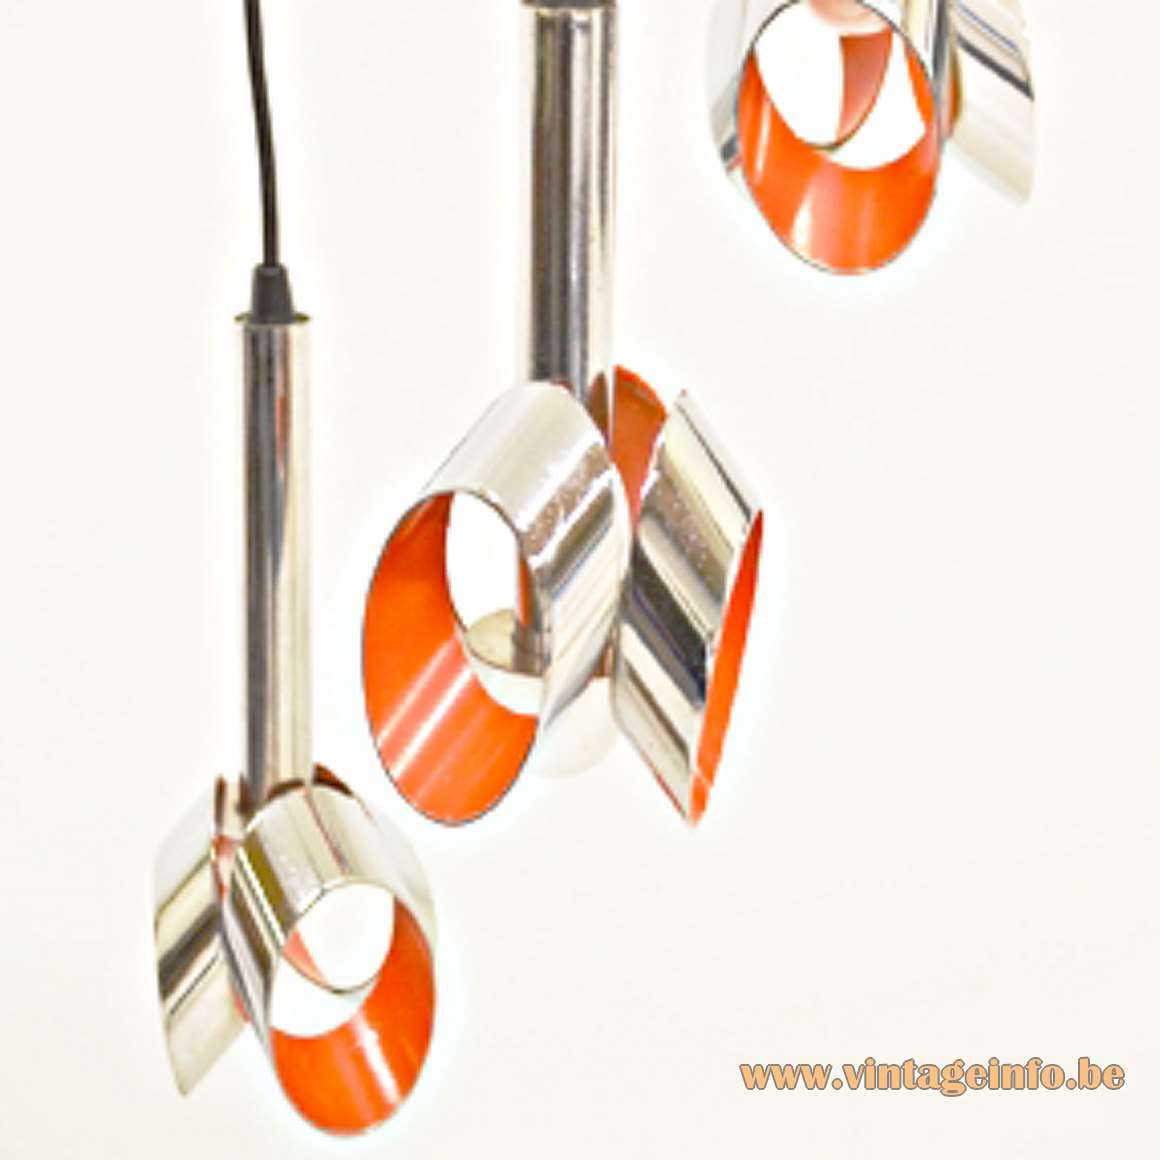 Massive Belgium Chrome And Orange RIngs Pendant Lamp - Raak Amsterdam